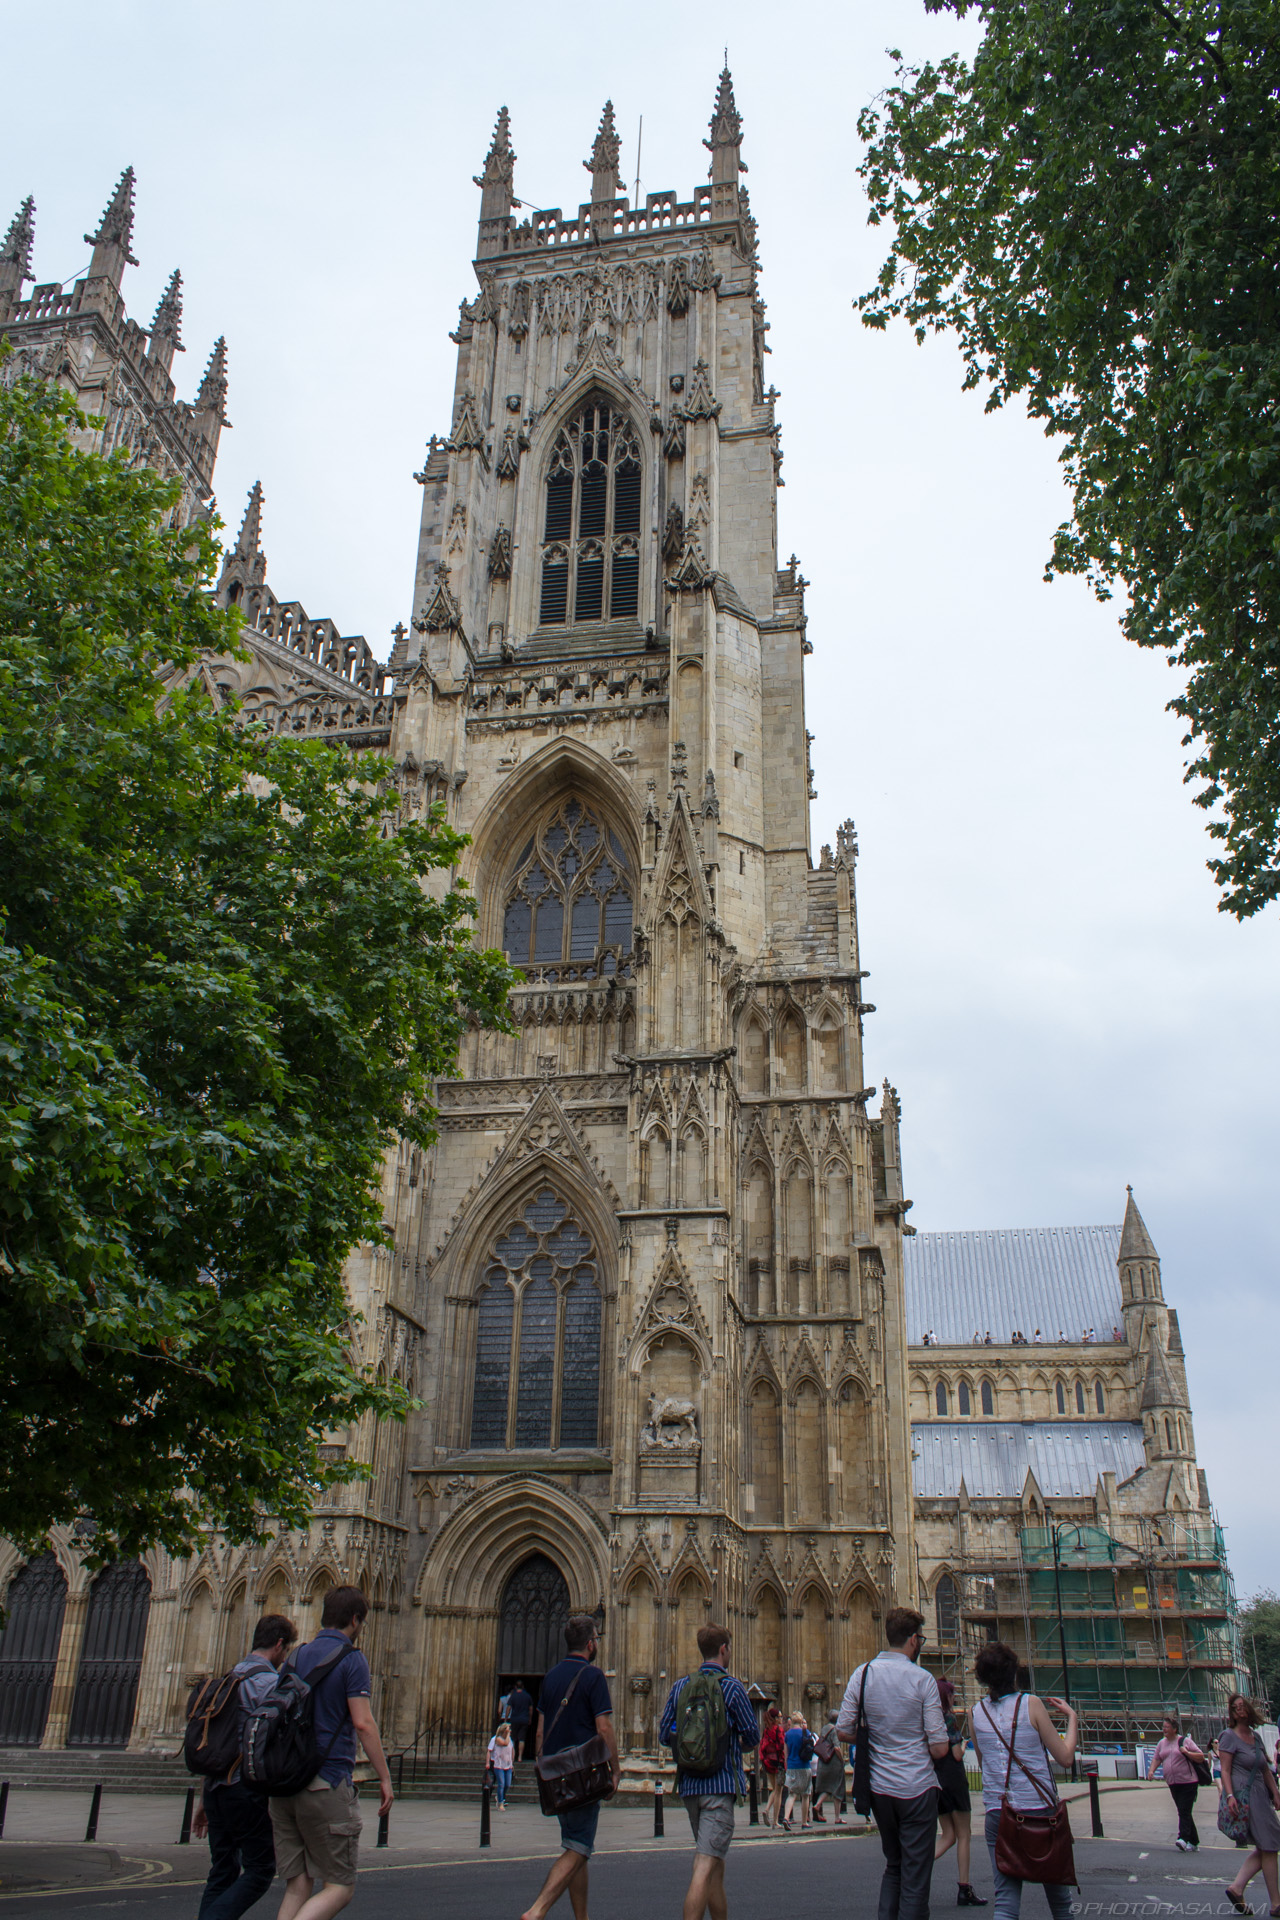 http://photorasa.com/places/yorkminster-cathedral/attachment/york-minster-cathedral-west-tower/